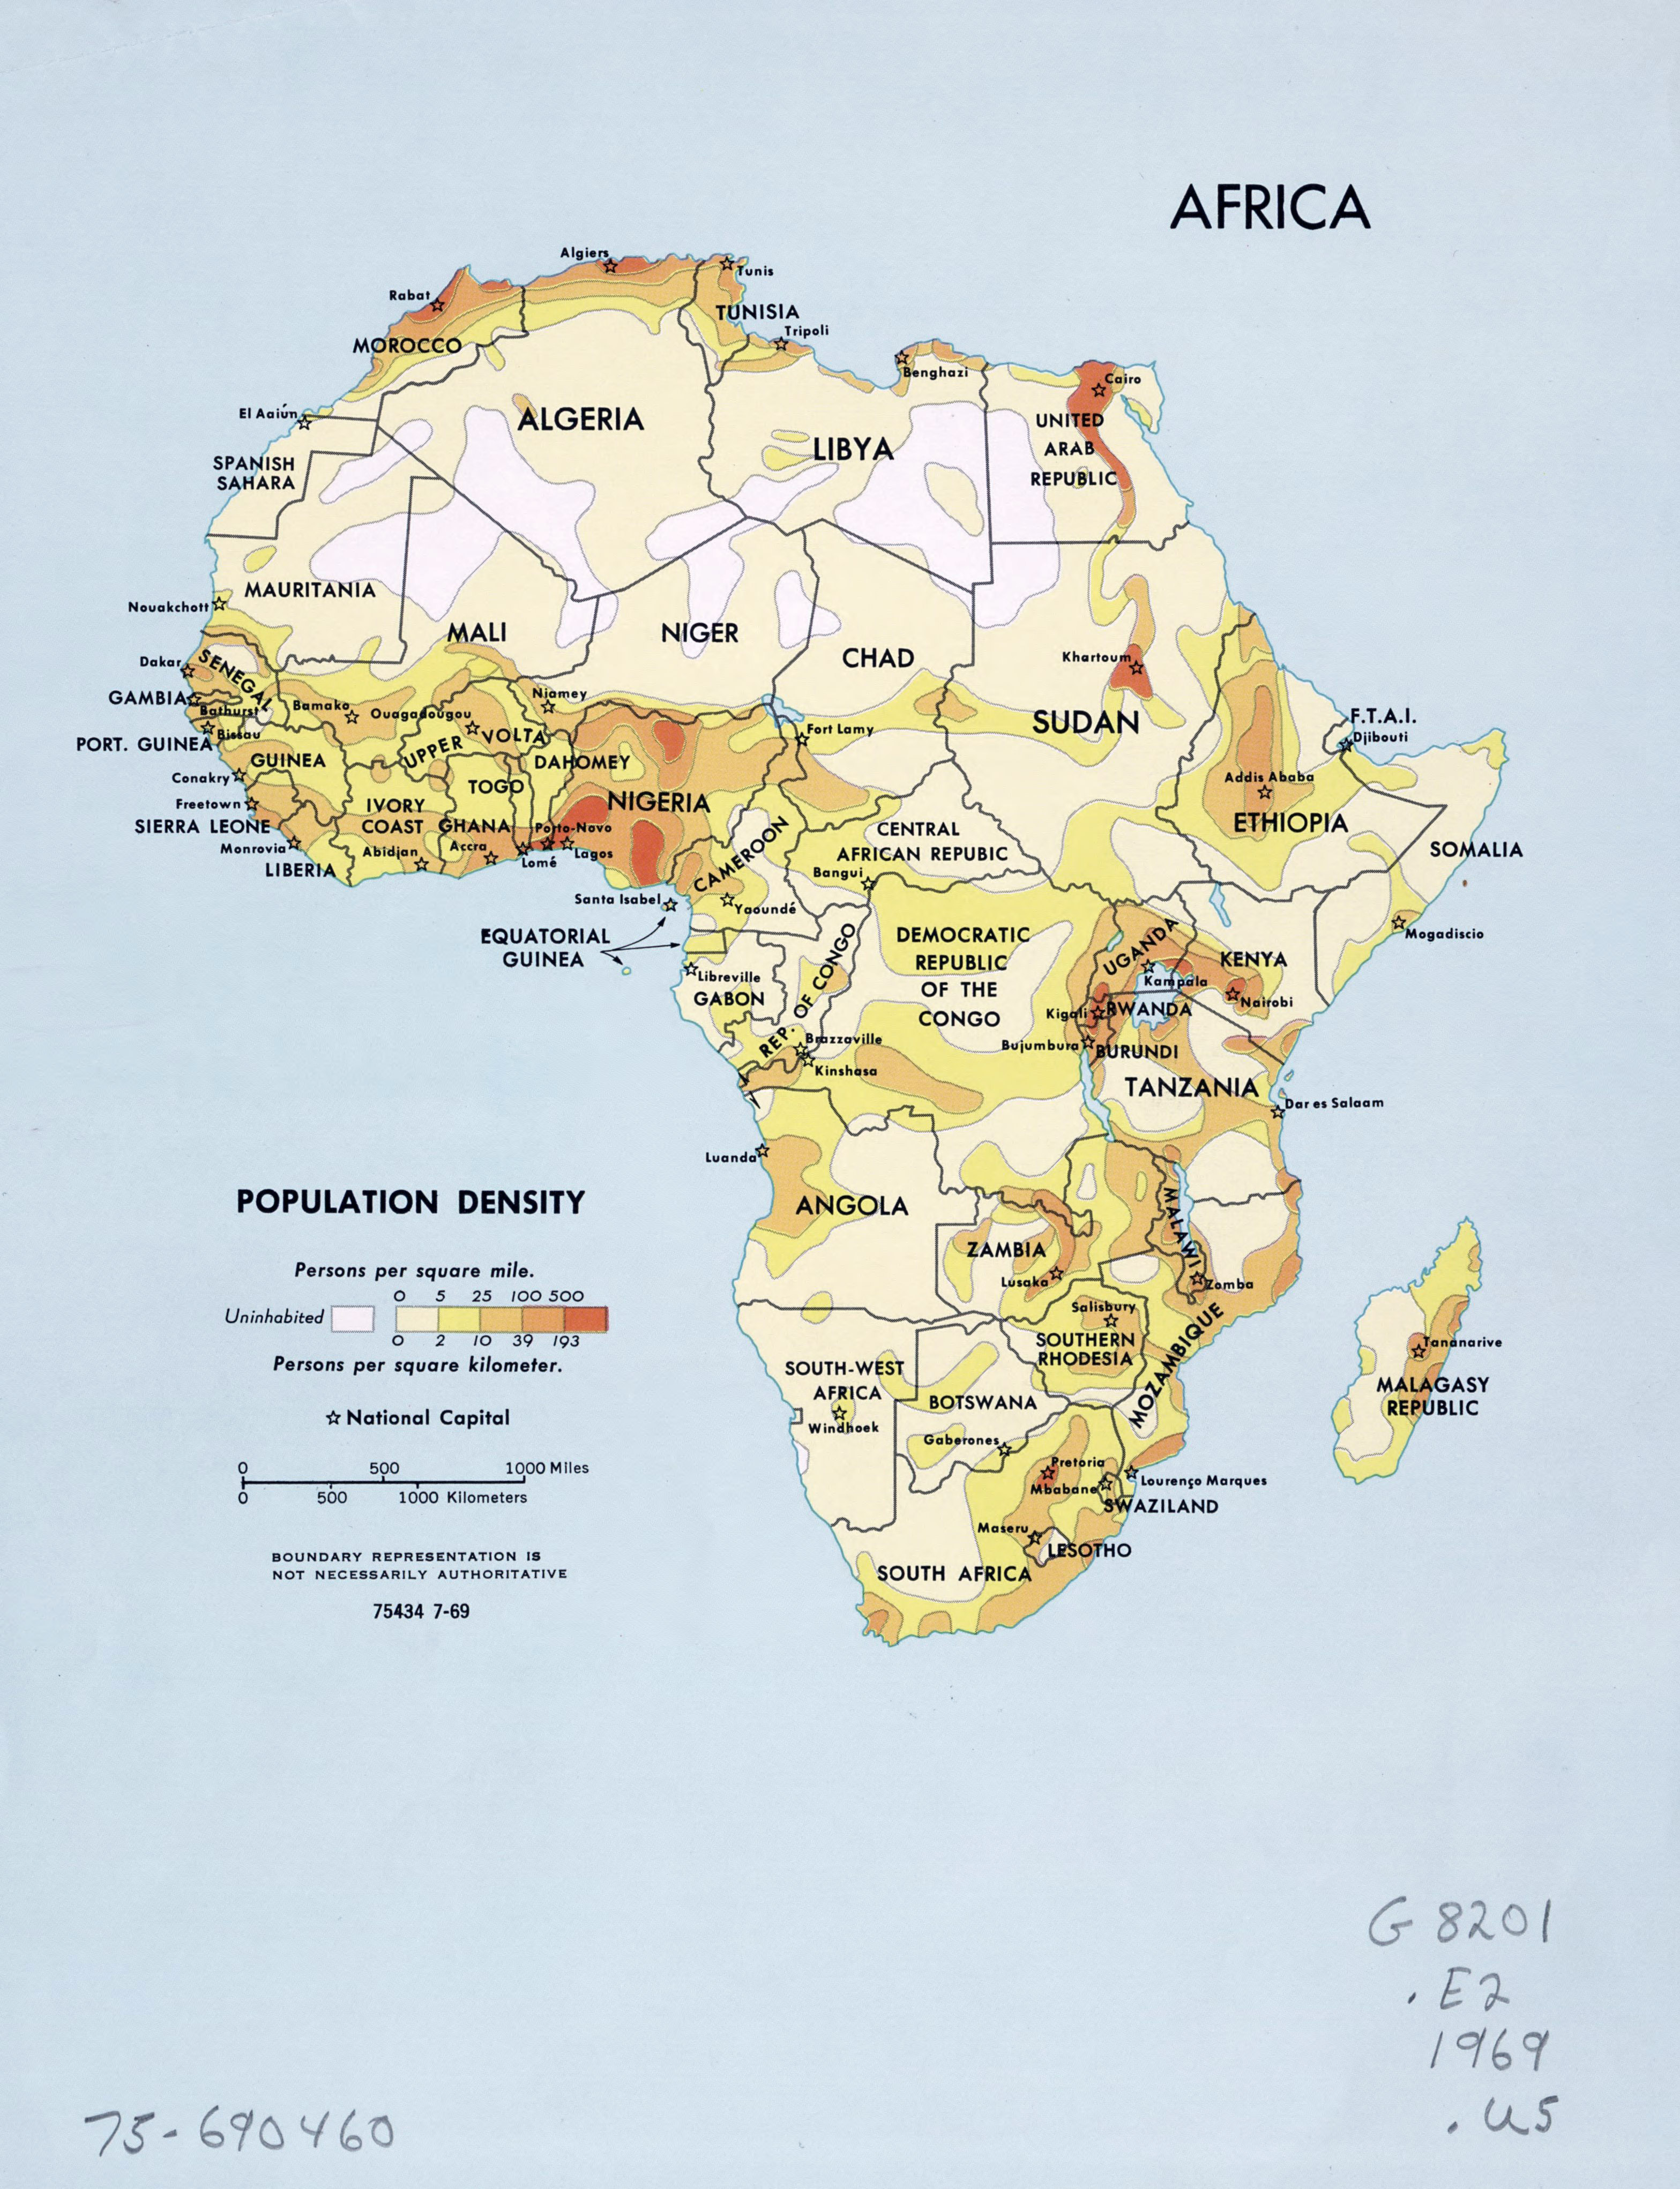 Large Detailed Population Density Map Of Africa 1969 Africa